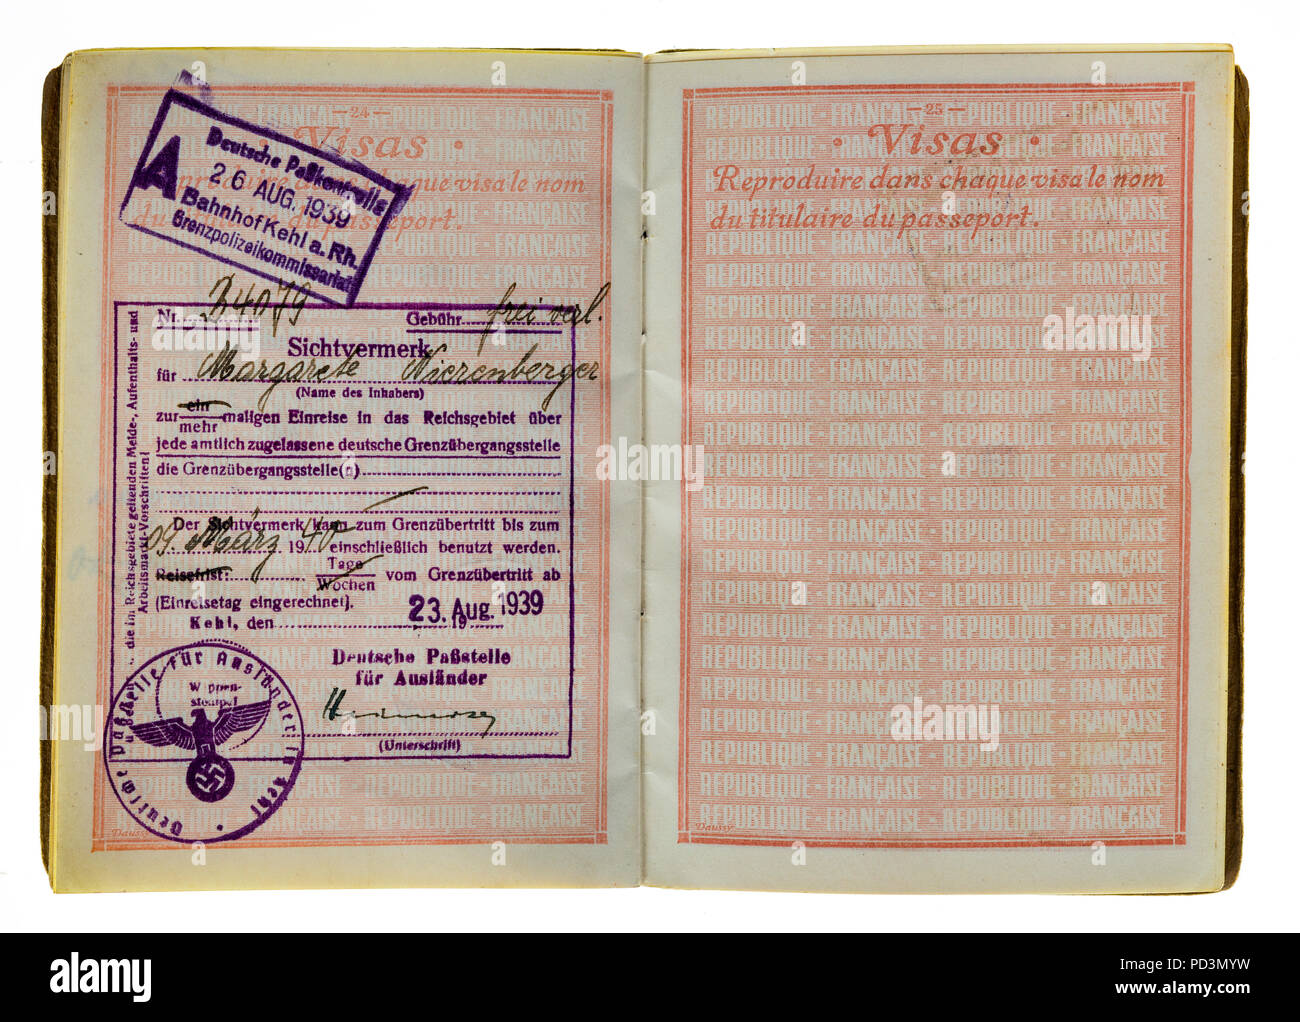 1935's vintage French passport, page with August 23 1939 German visas stamps marks, Stock Photo